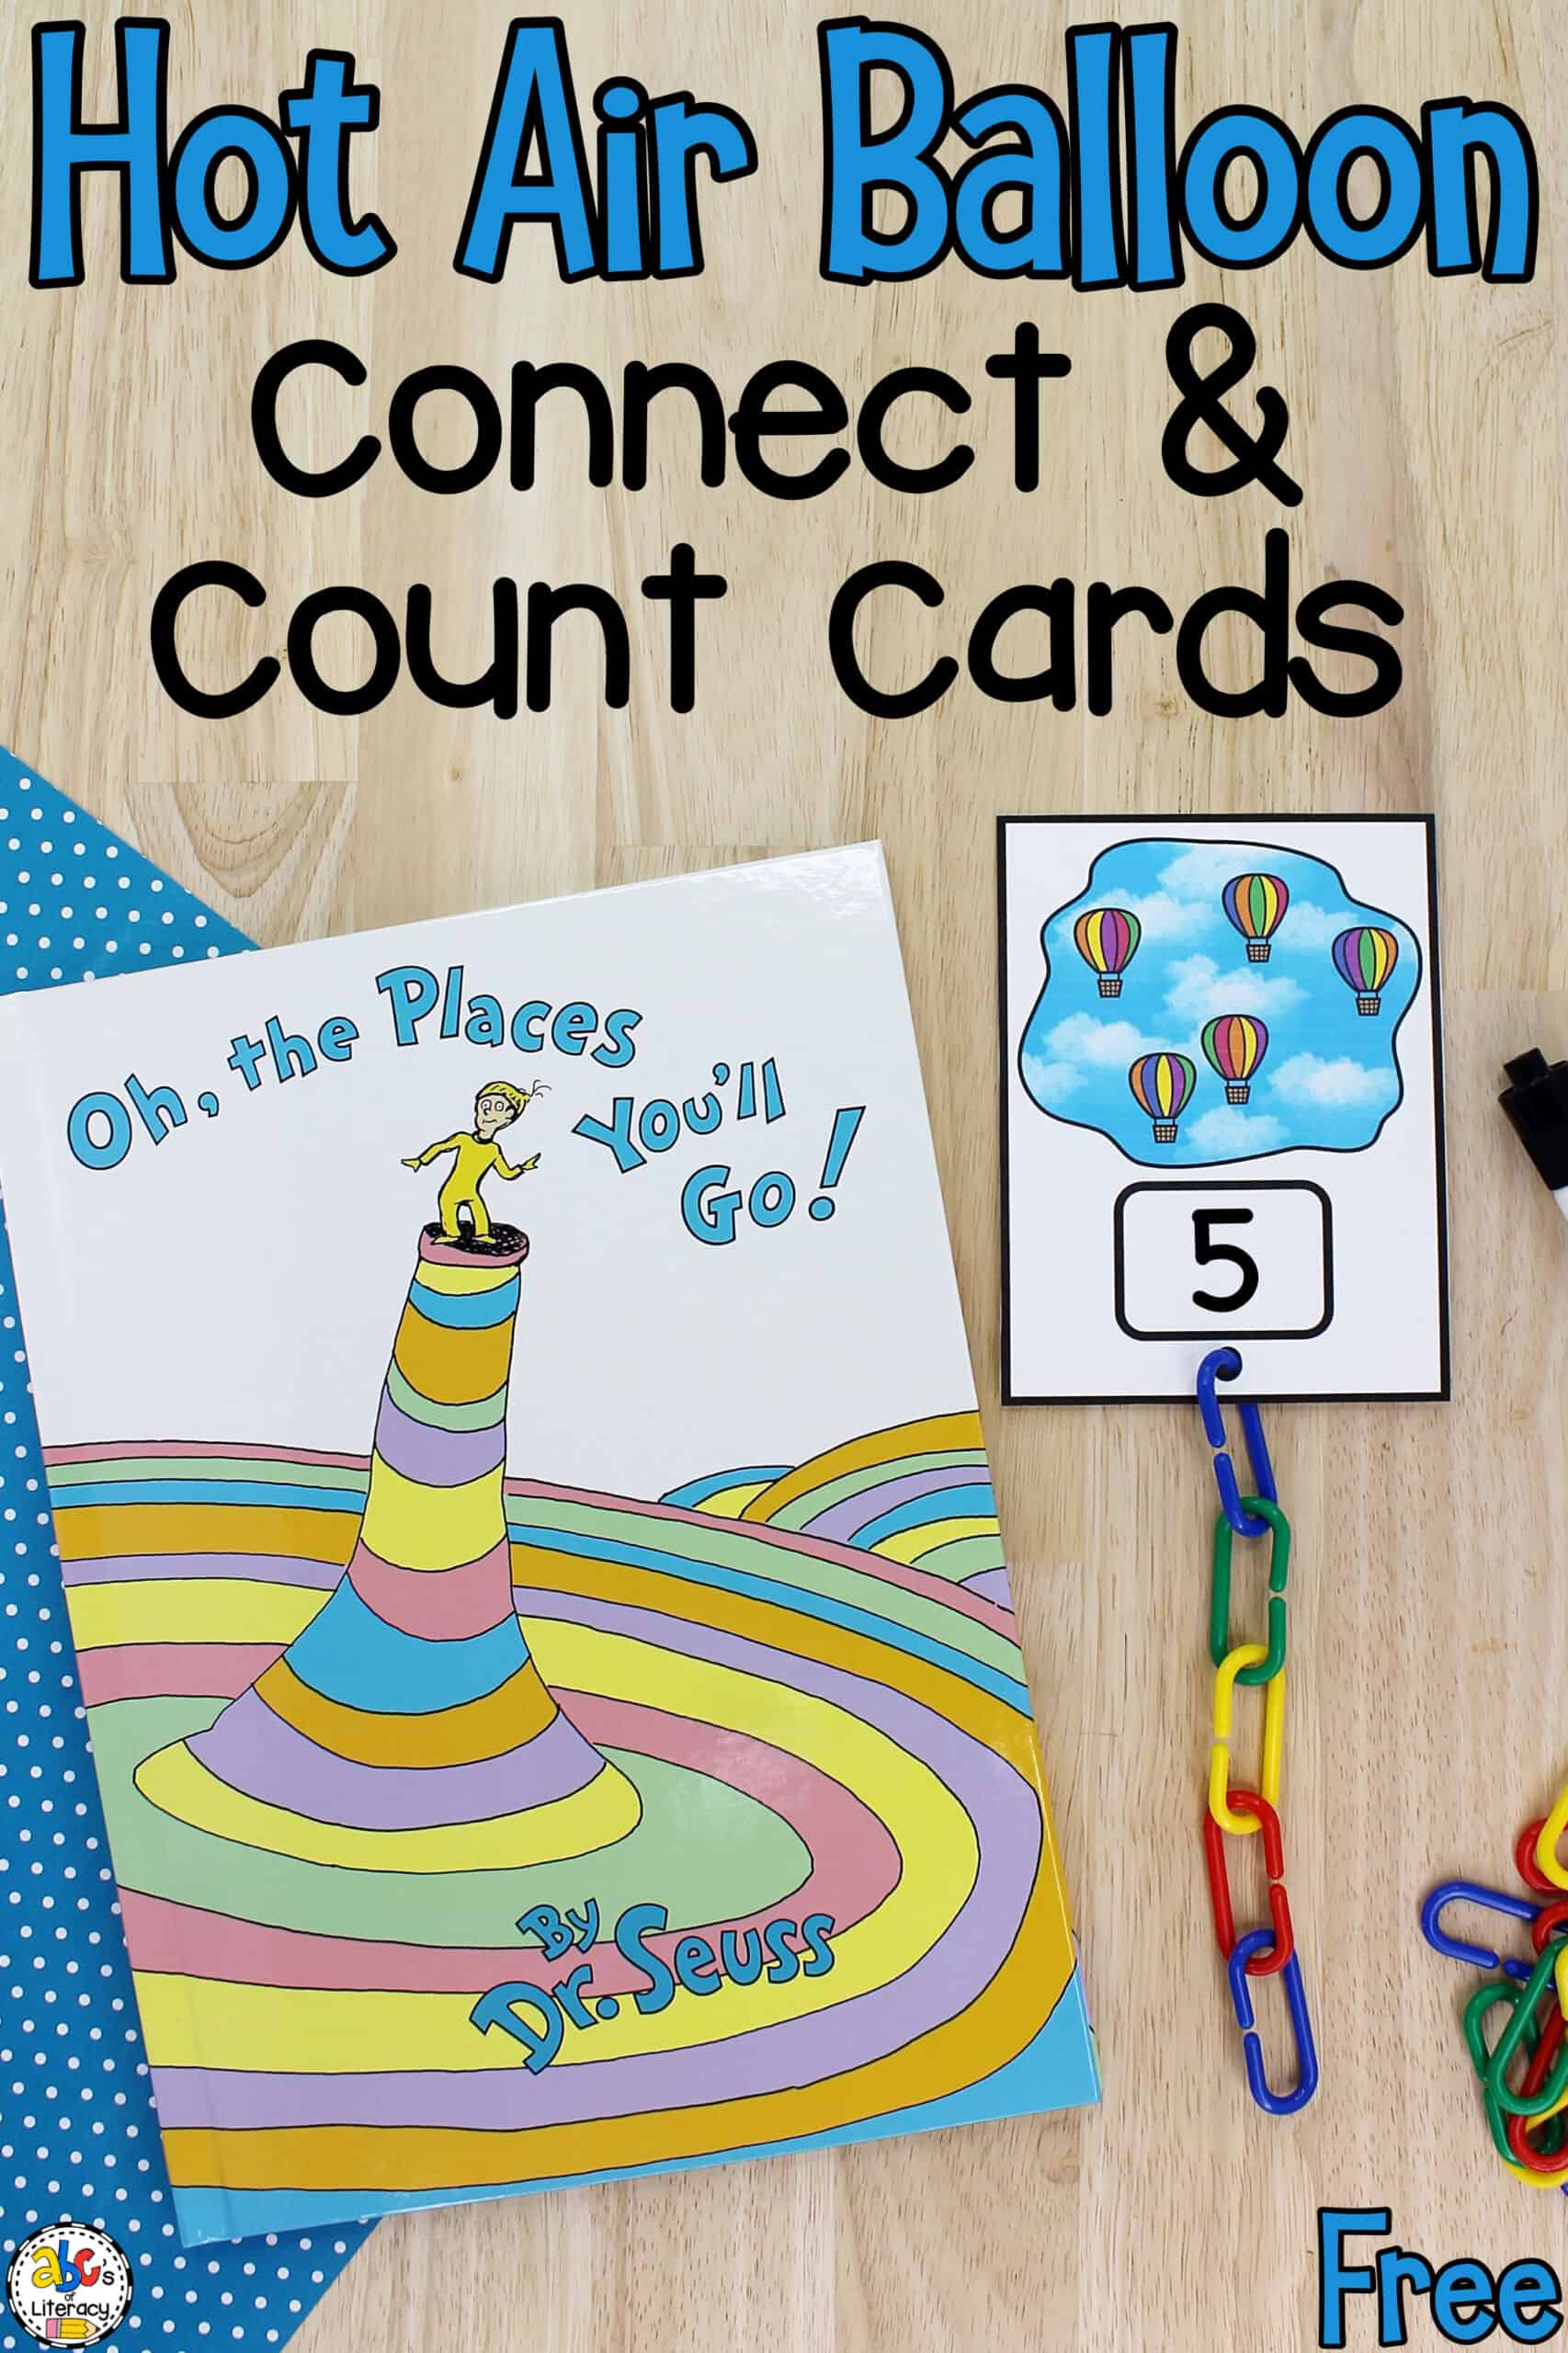 Dr. Seuss Inspired Activity